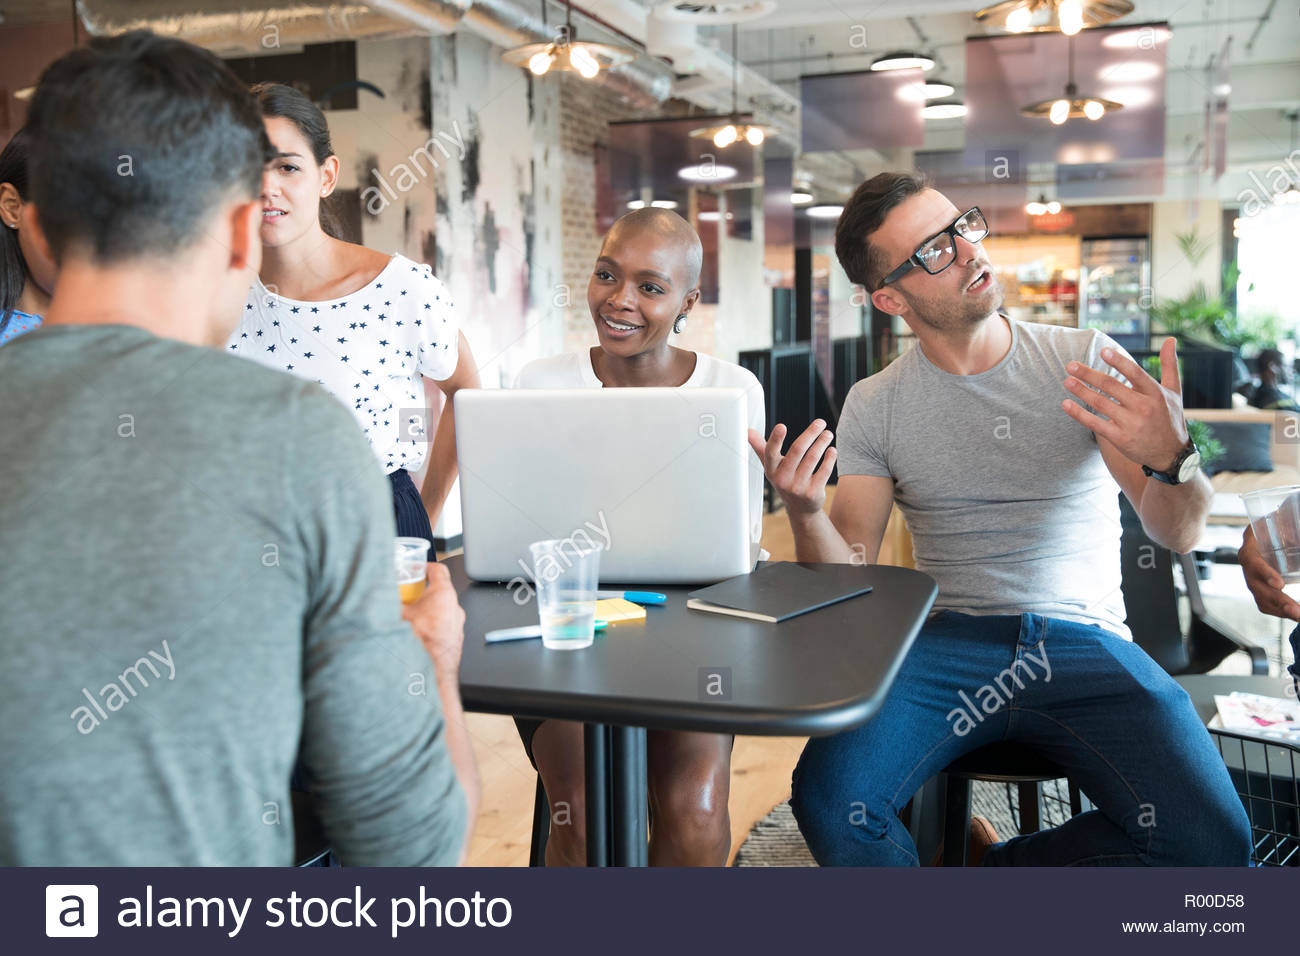 Colleagues talking at table Stock Photo